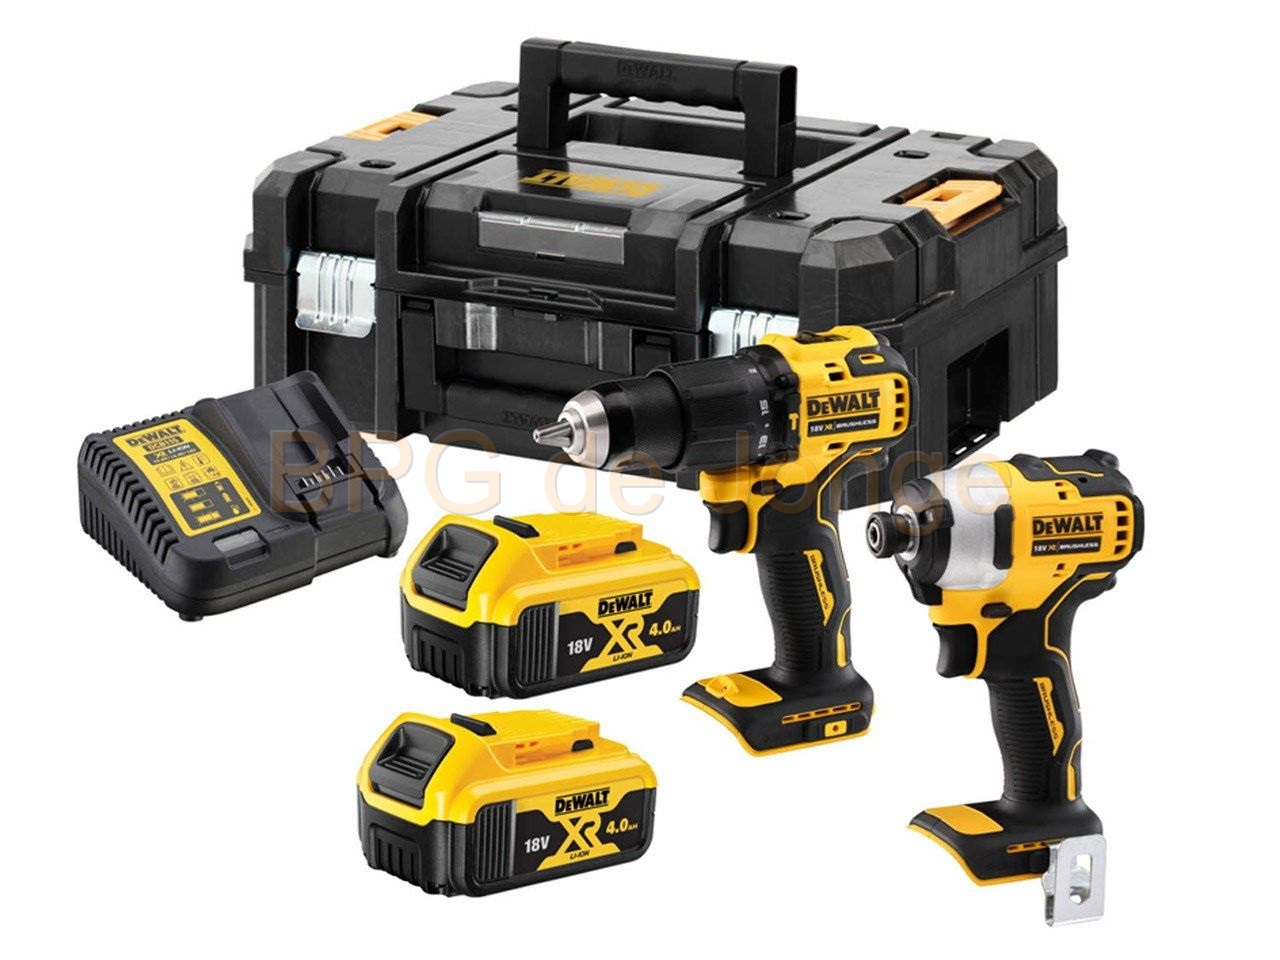 Dewalt 18V XR Brushless DCD709 + DCF809